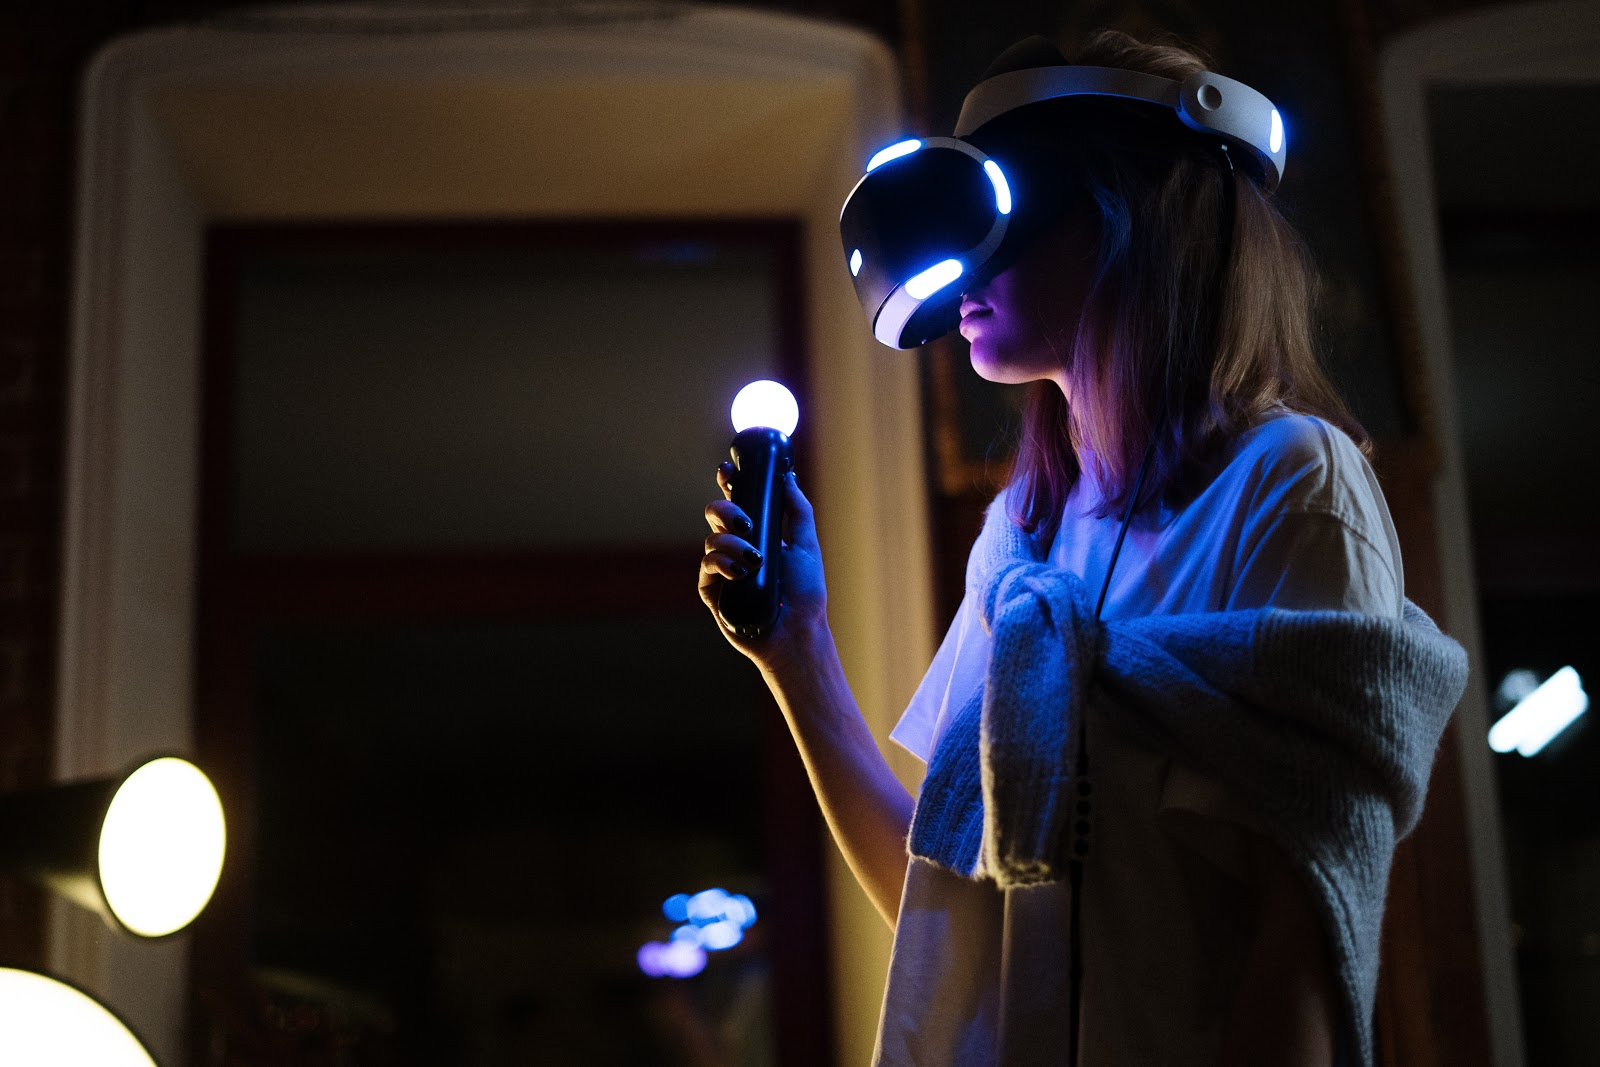 Best virtual reality headsets for online gaming